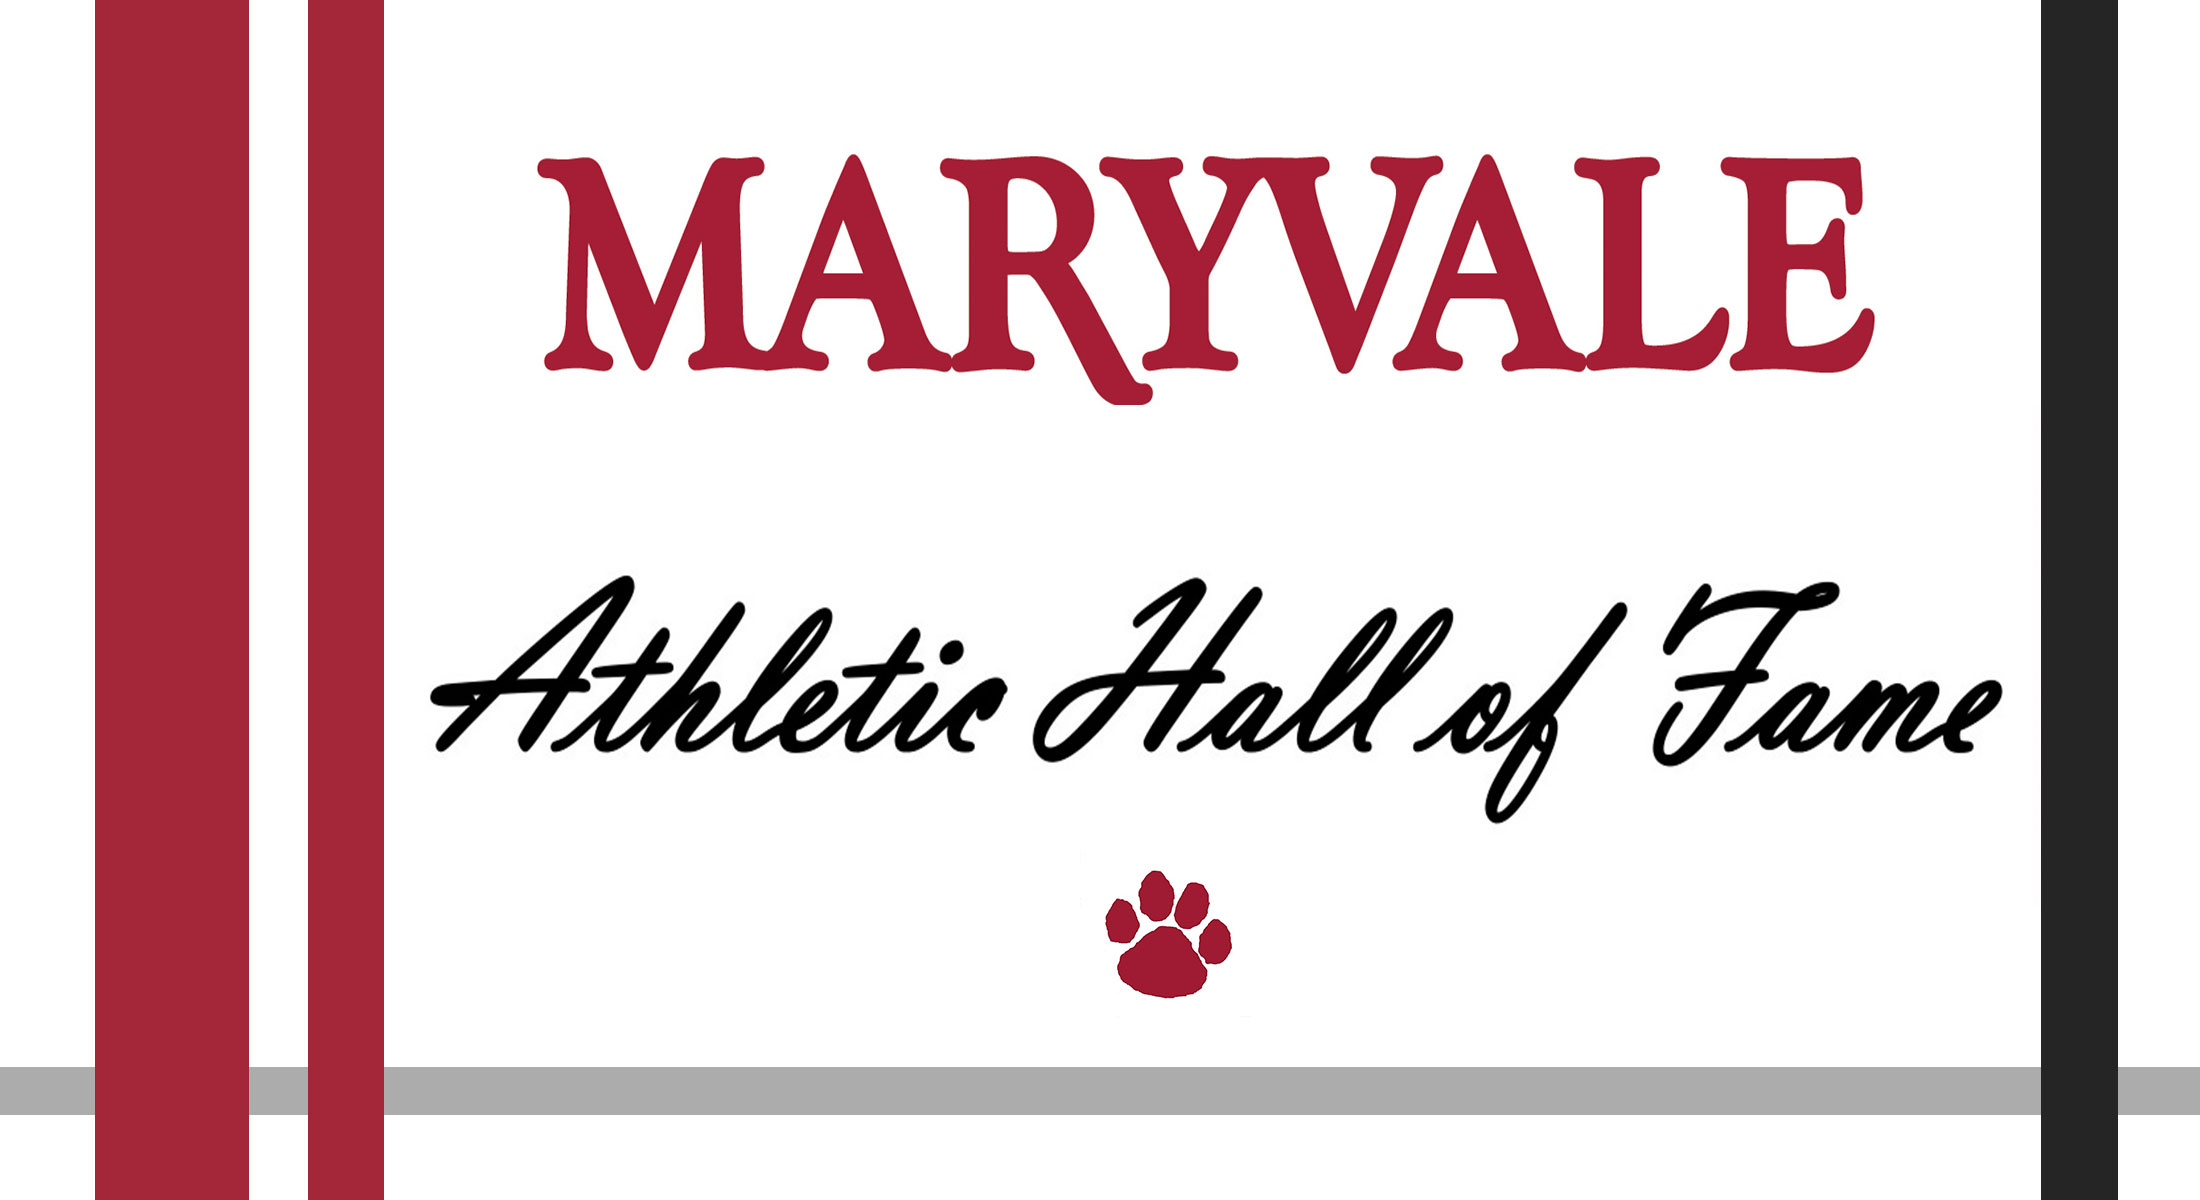 Maryvale announces Hall of Fame inductees